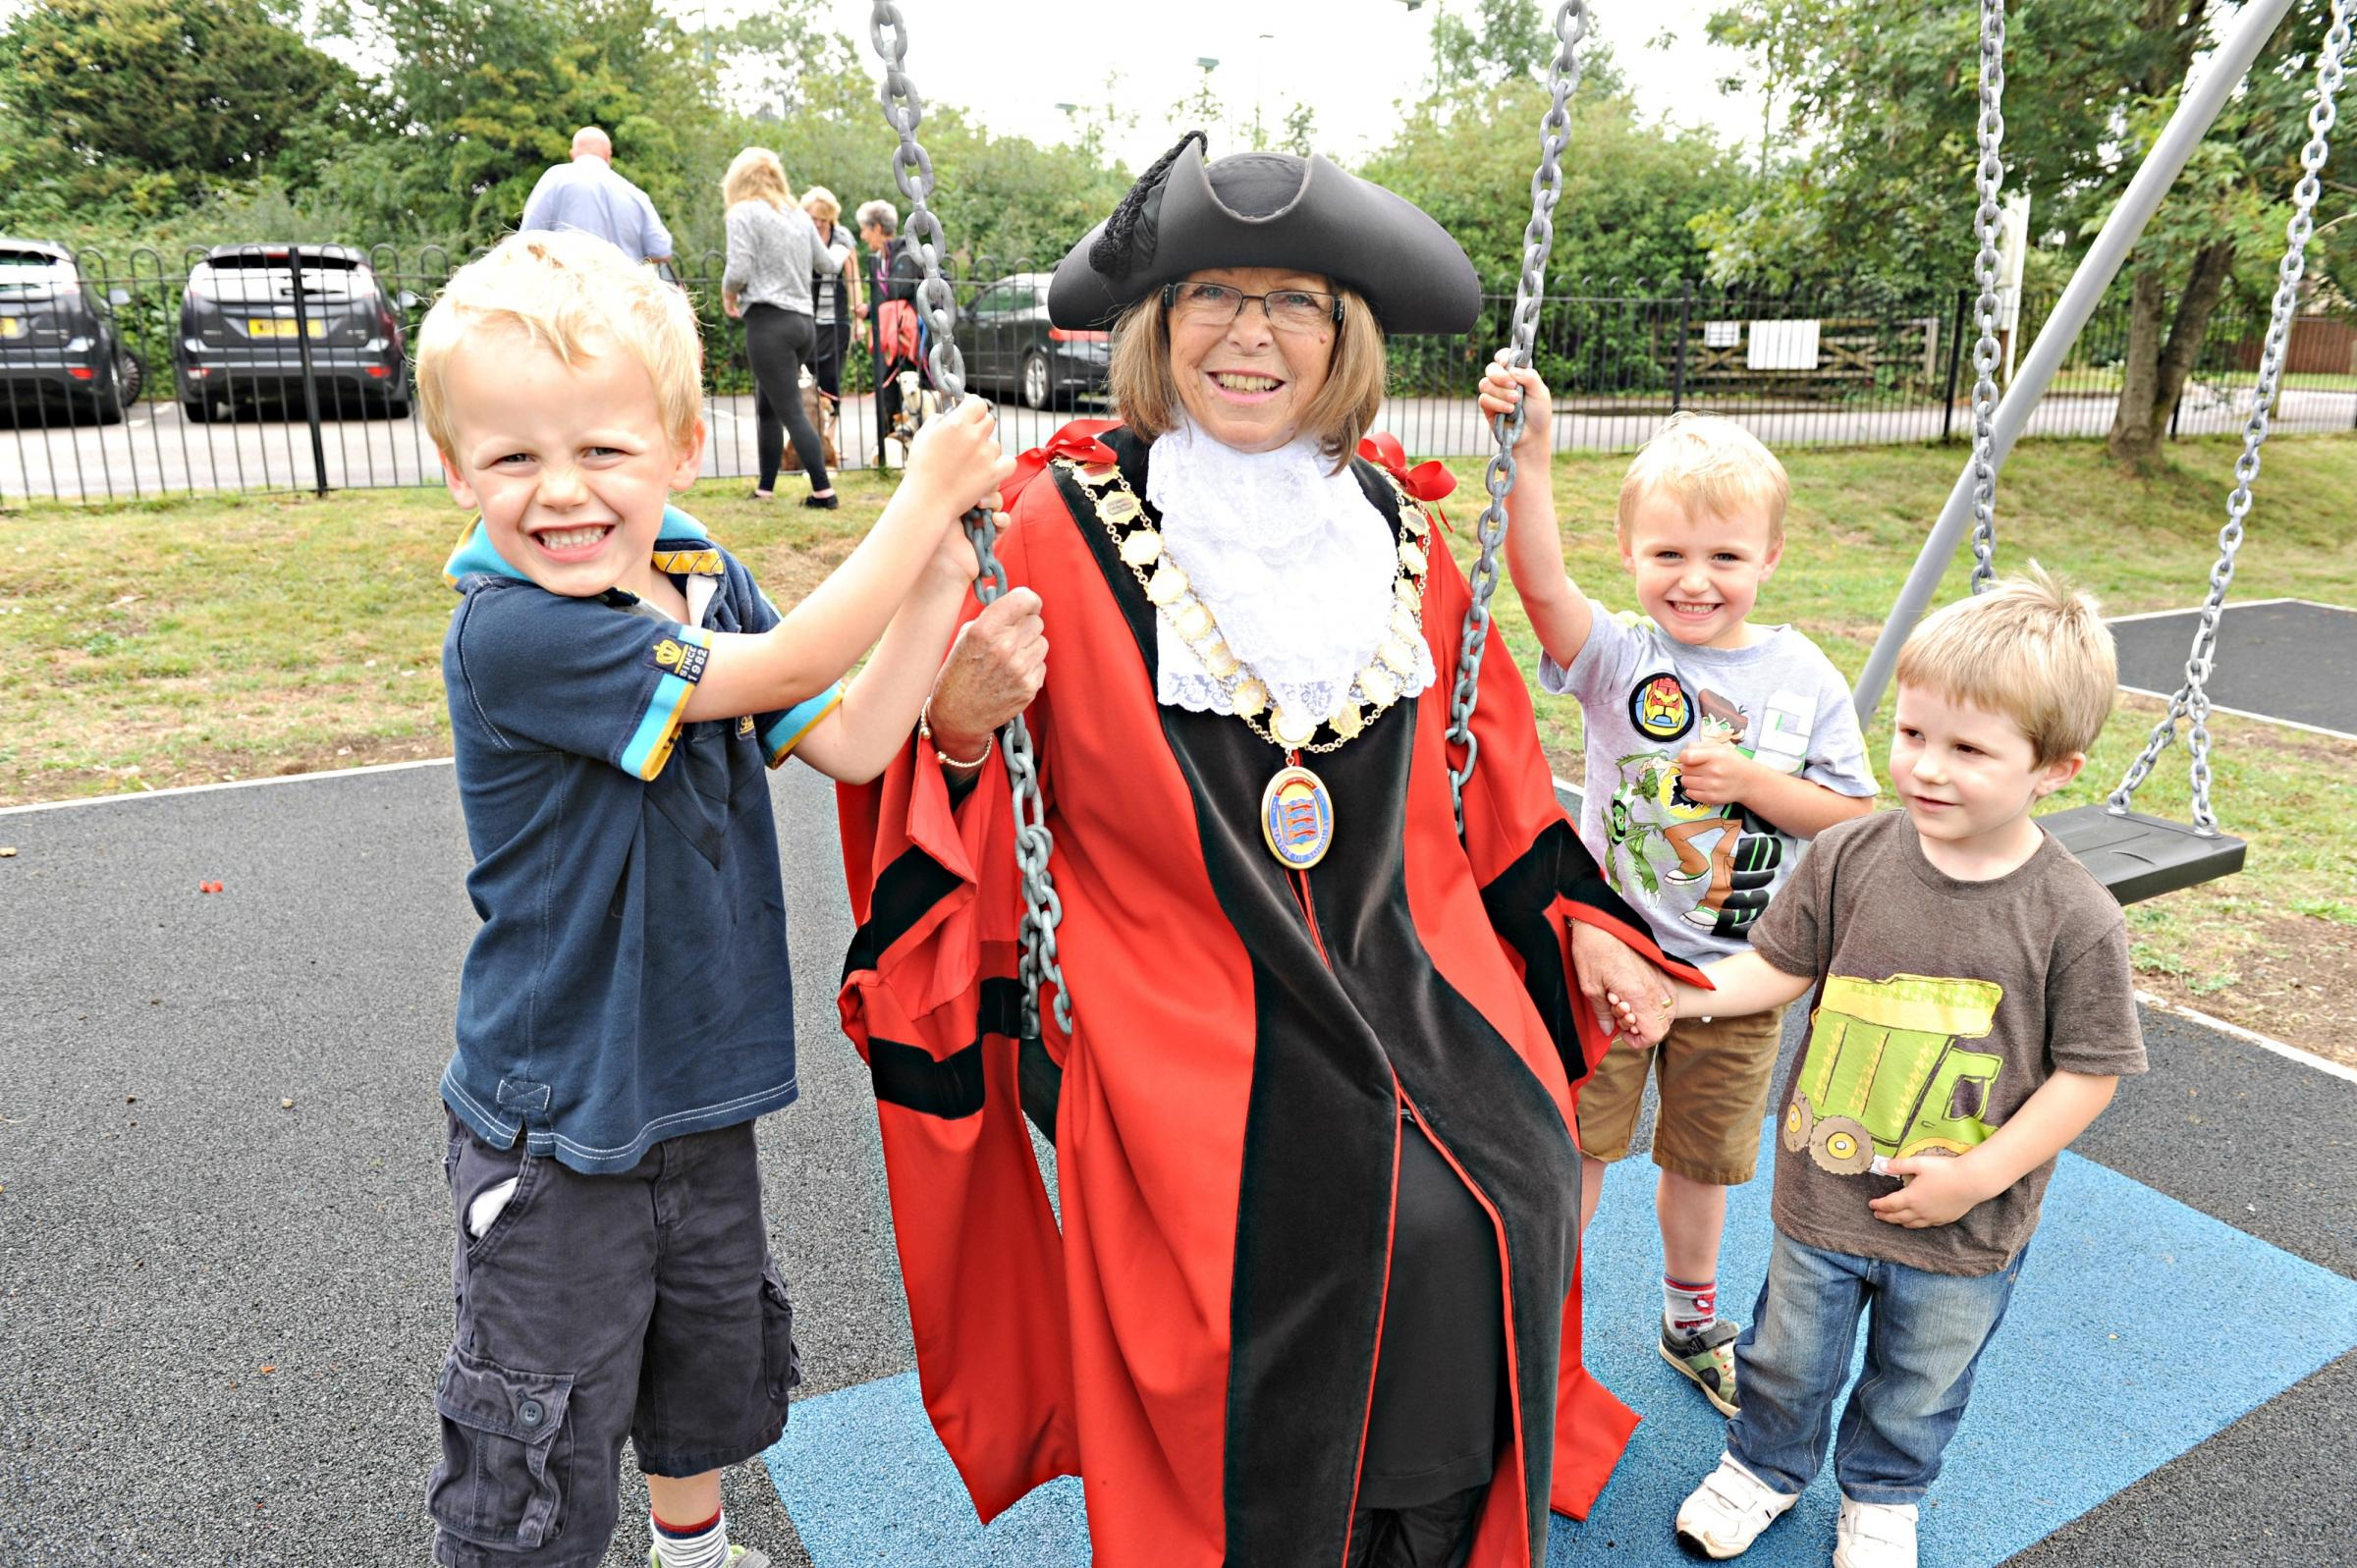 SR_361_001     Mayor of Chipping Sodbury Cllr Wendy Whittle with William Parson,4, Ben Tierney,4, and Jamie Morrison,4, at the opening of the refurbished Ridings Play area (8966963)